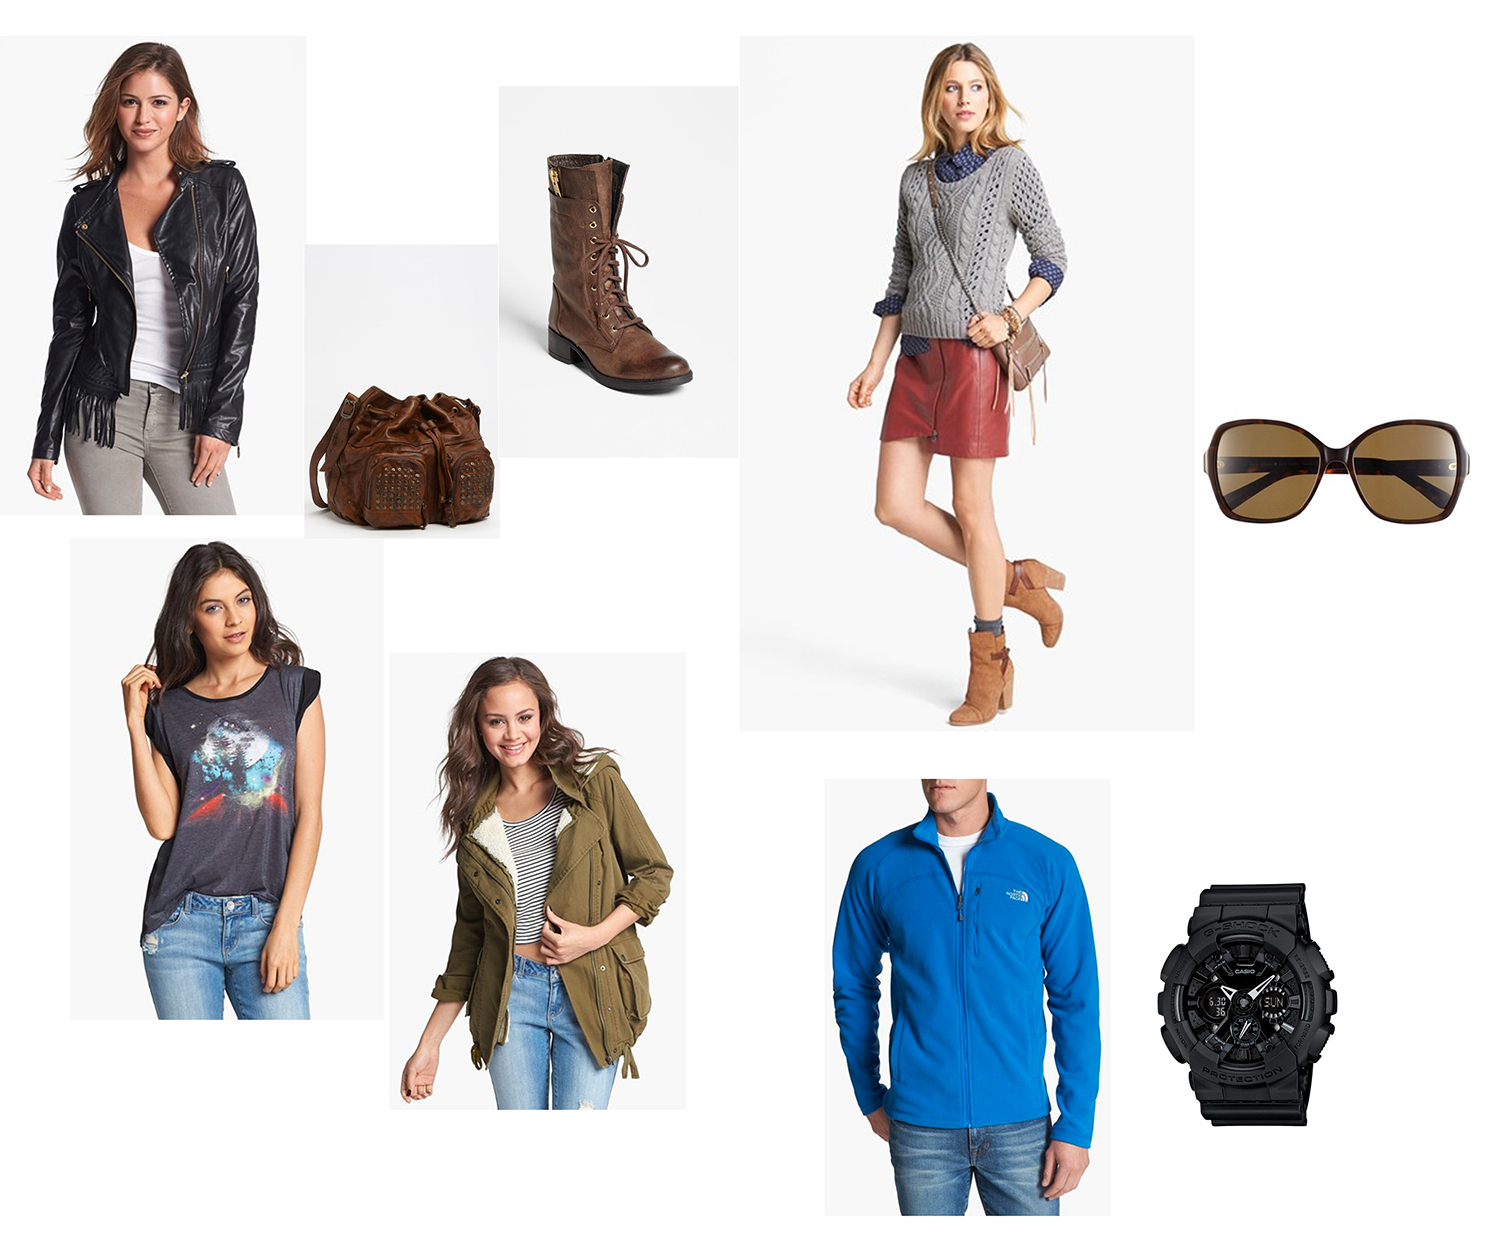 Top Nordstrom coupon: Up to 4% Off Total Purchase With a Discount Gift Card. 50 coupons & promo codes for December. Get free shipping & free returns on all orders.